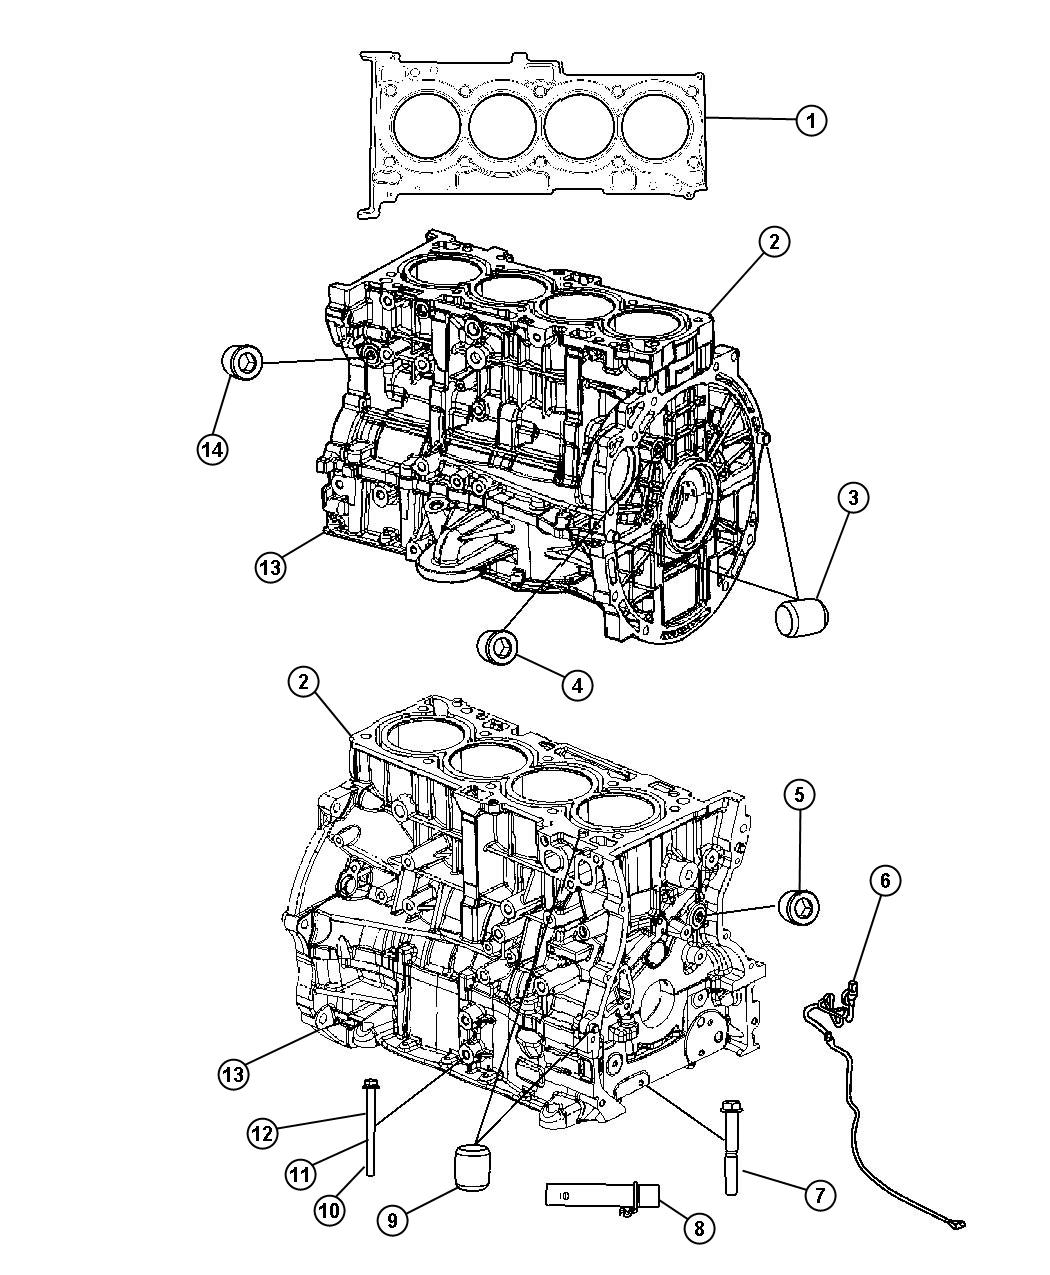 Jeep Compass Engine. Long block. [engine oil cooler